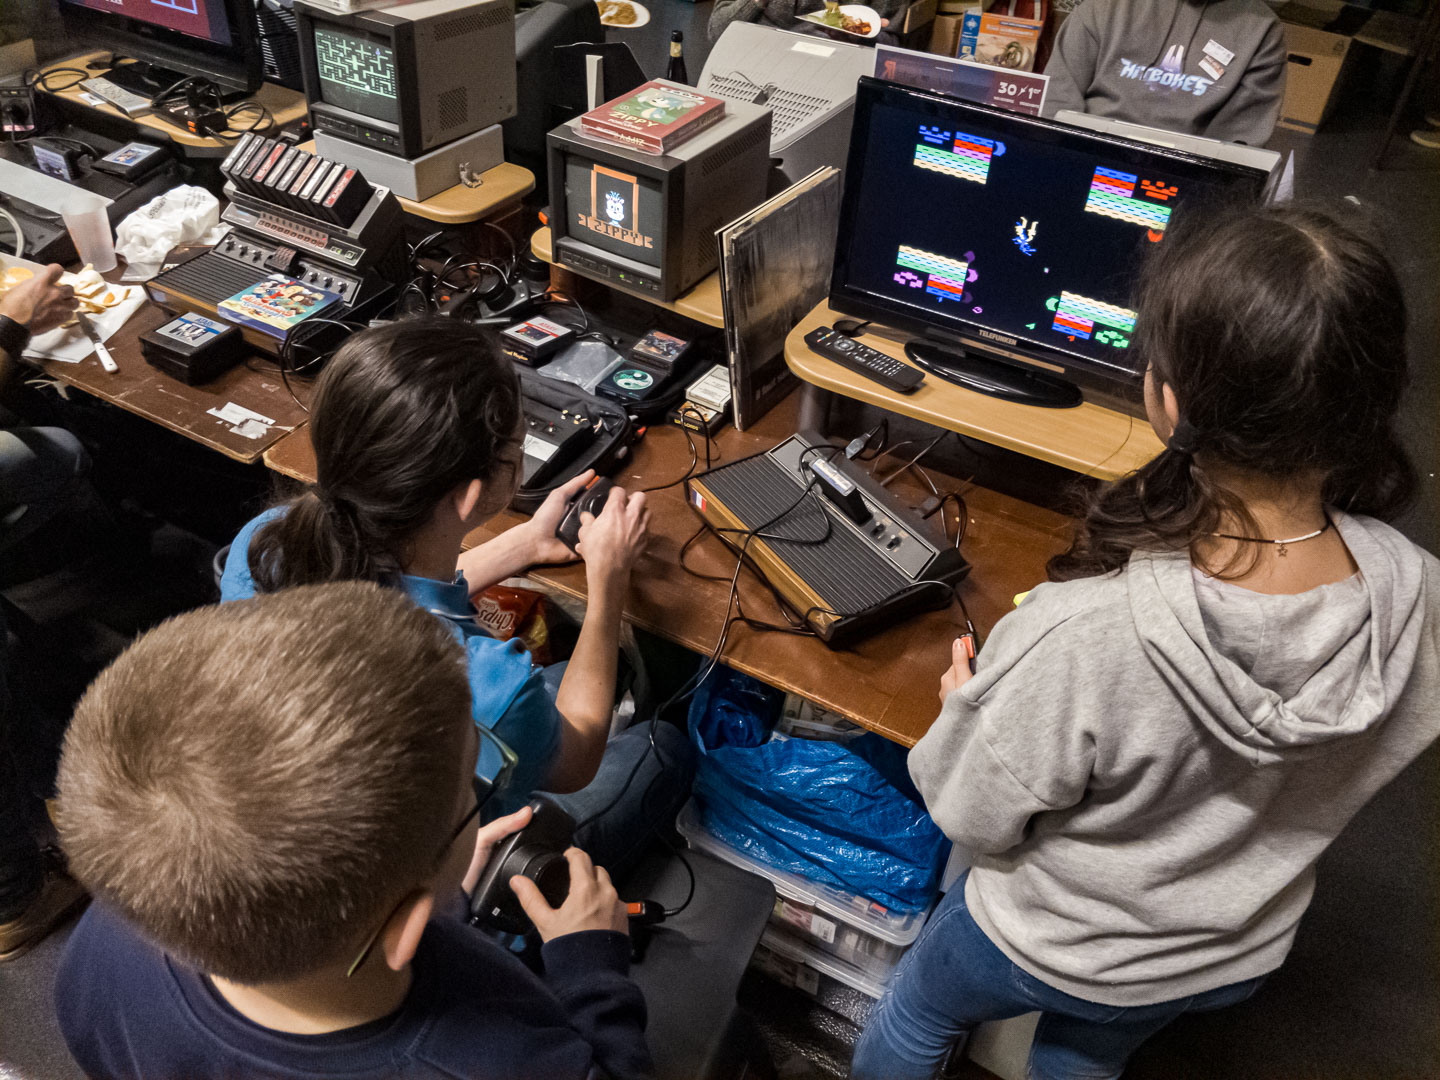 Kids having fun on an Atari 2600